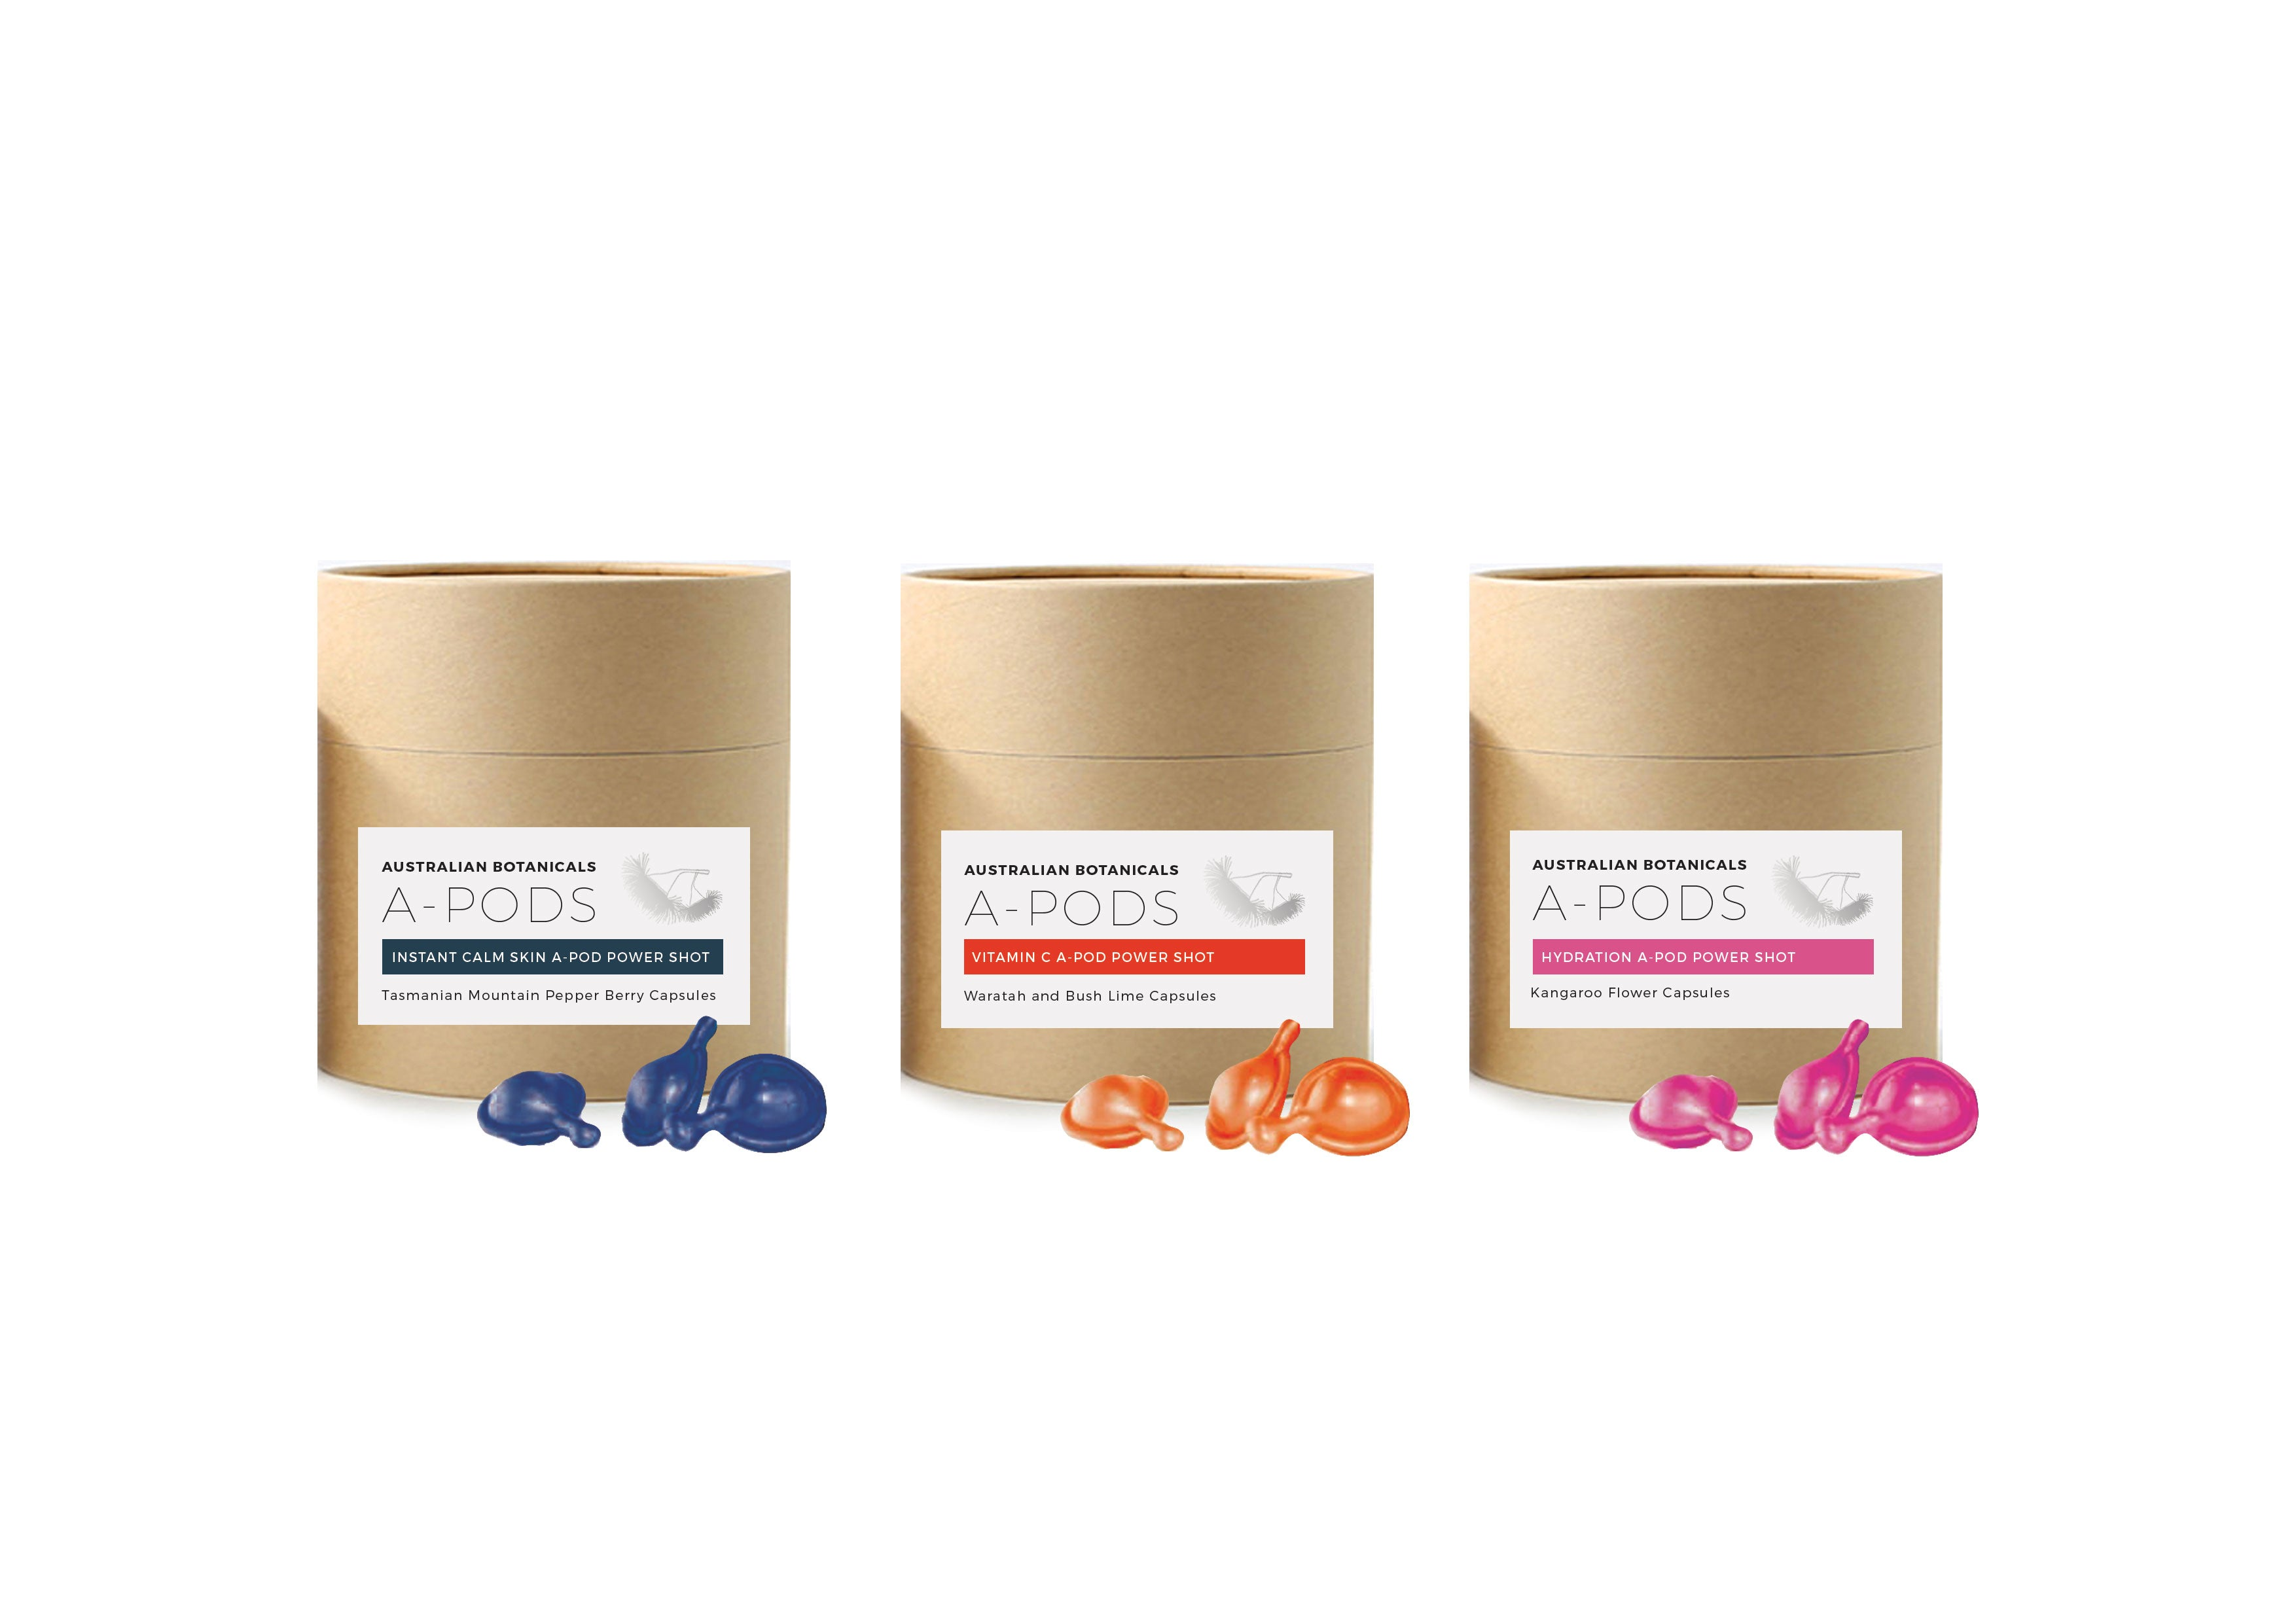 Anti-Aging & Anti-Pigmentation A-PODS with Strawberry Gum - In-Flight Magic